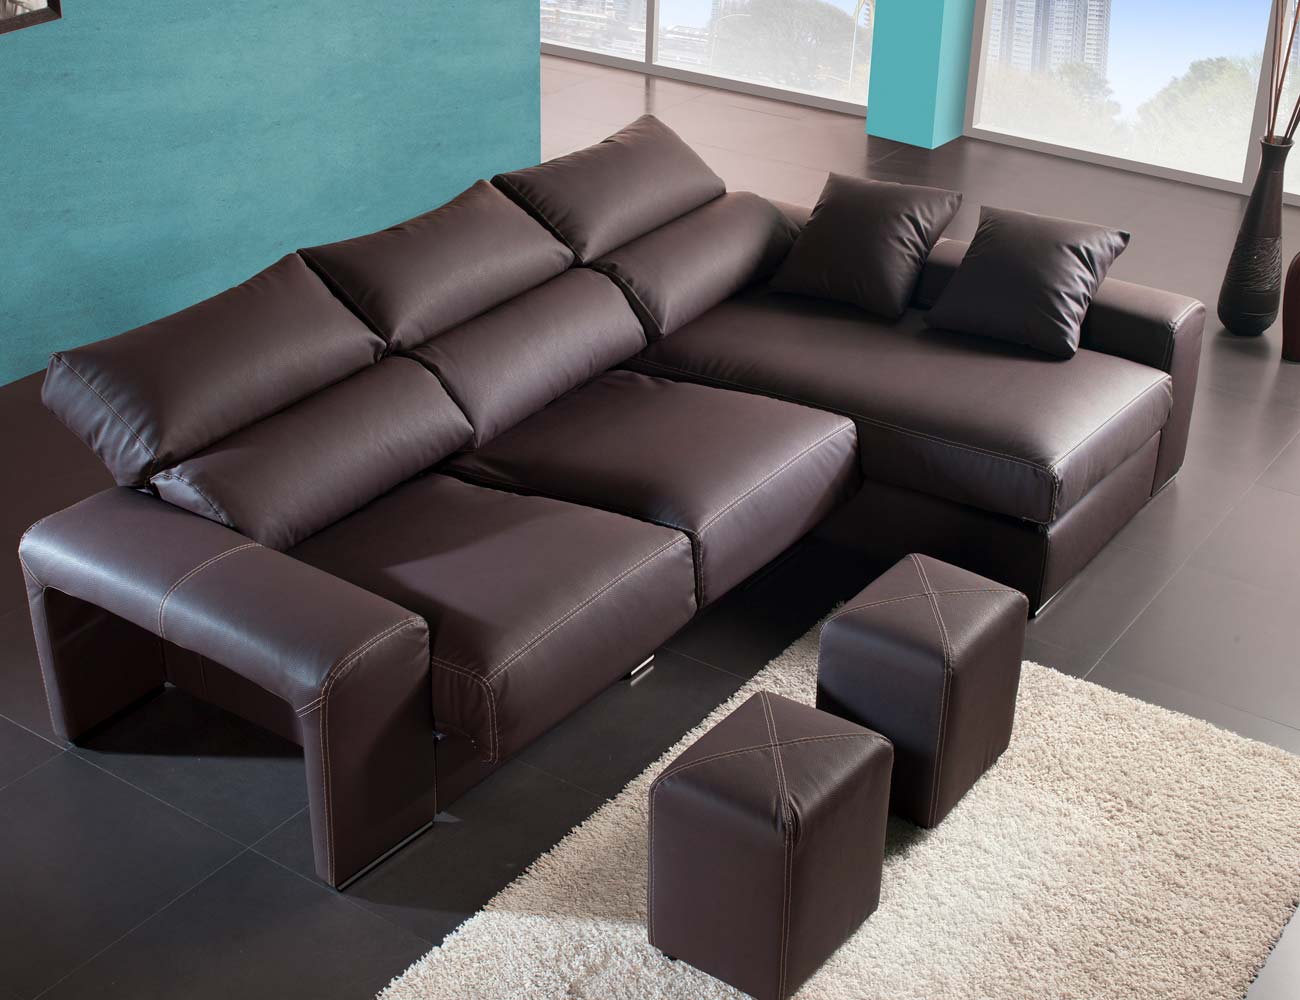 Sofa chaiselongue moderno polipiel chocolate poufs taburetes15